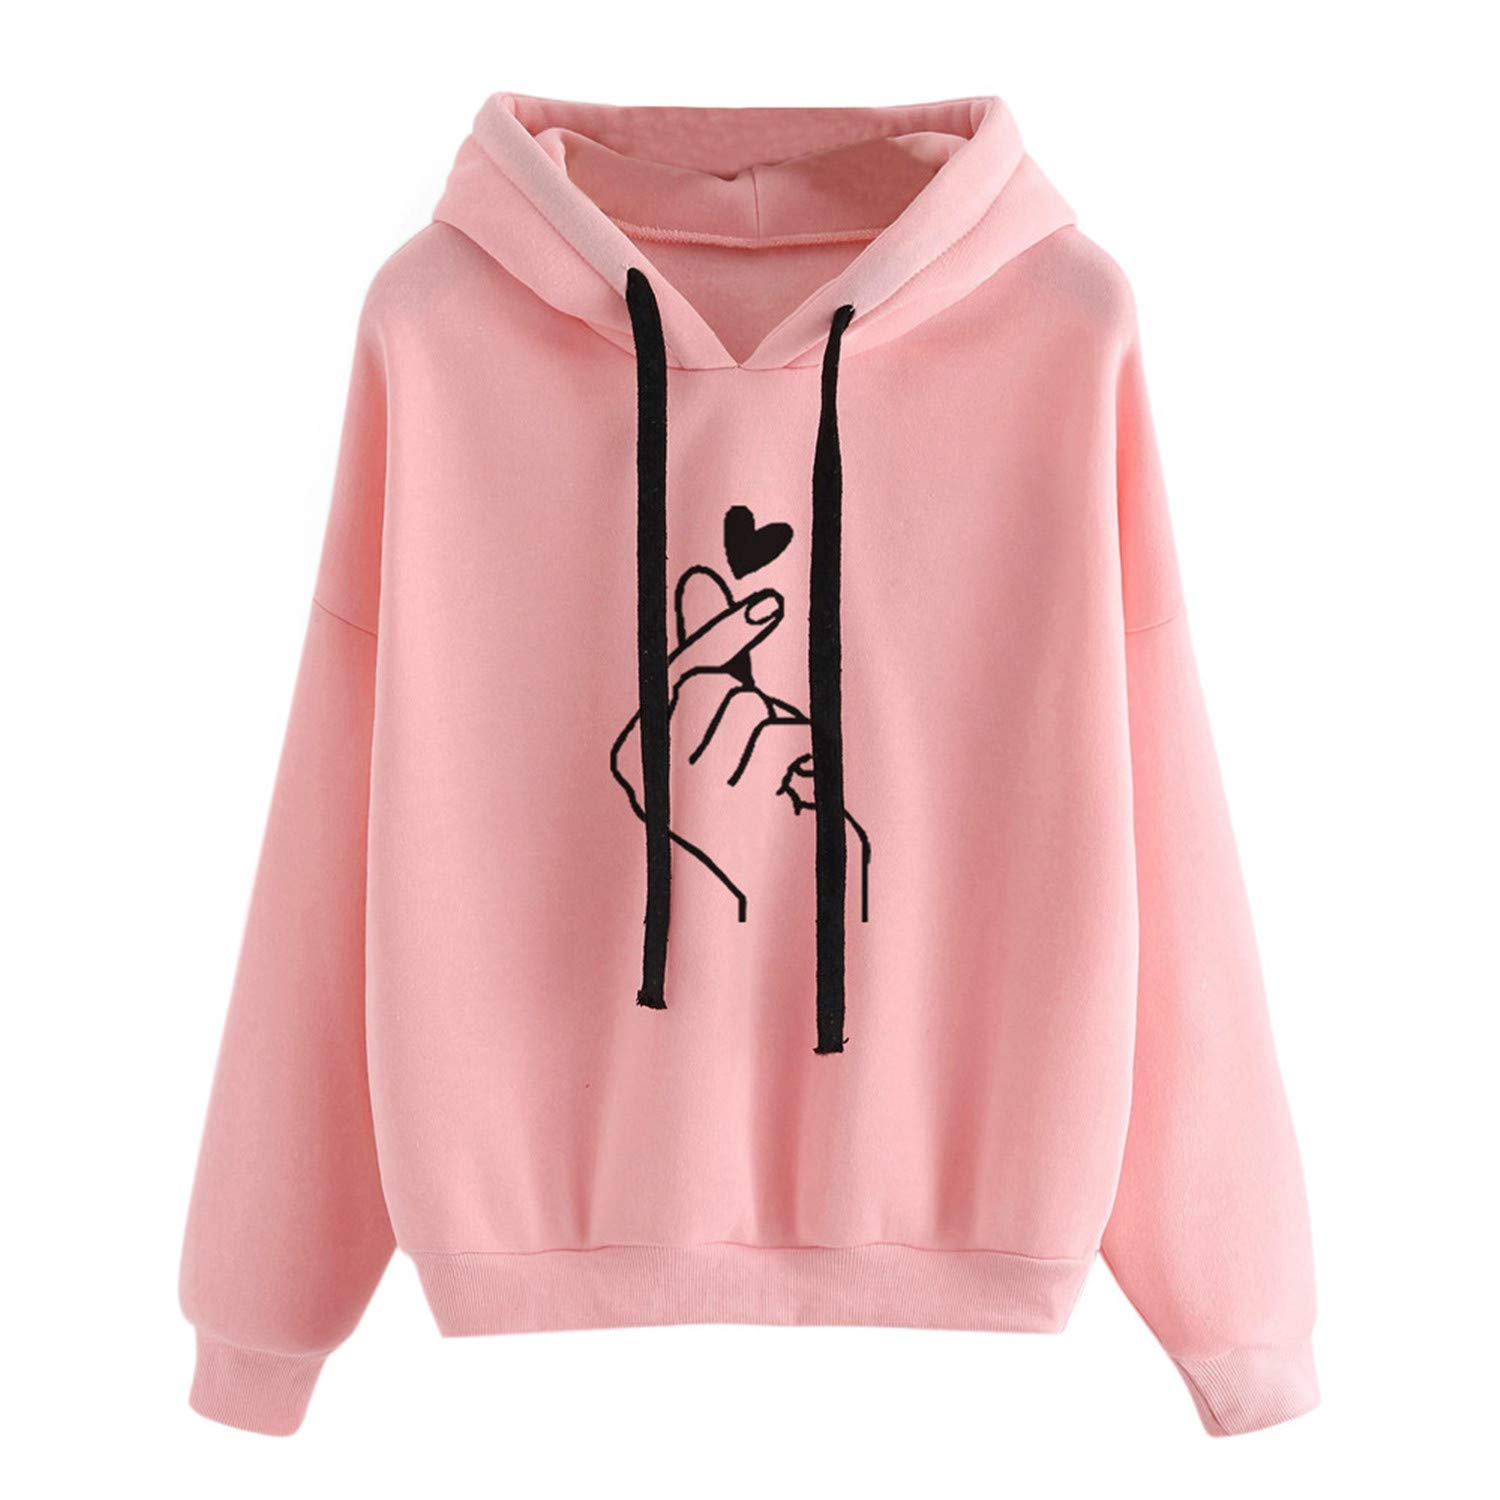 Litllin Womens Musical Notes Long Sleeve Hoodie Sweatshirt Hooded Pullover Tops Blouse at Amazon Womens Clothing store: